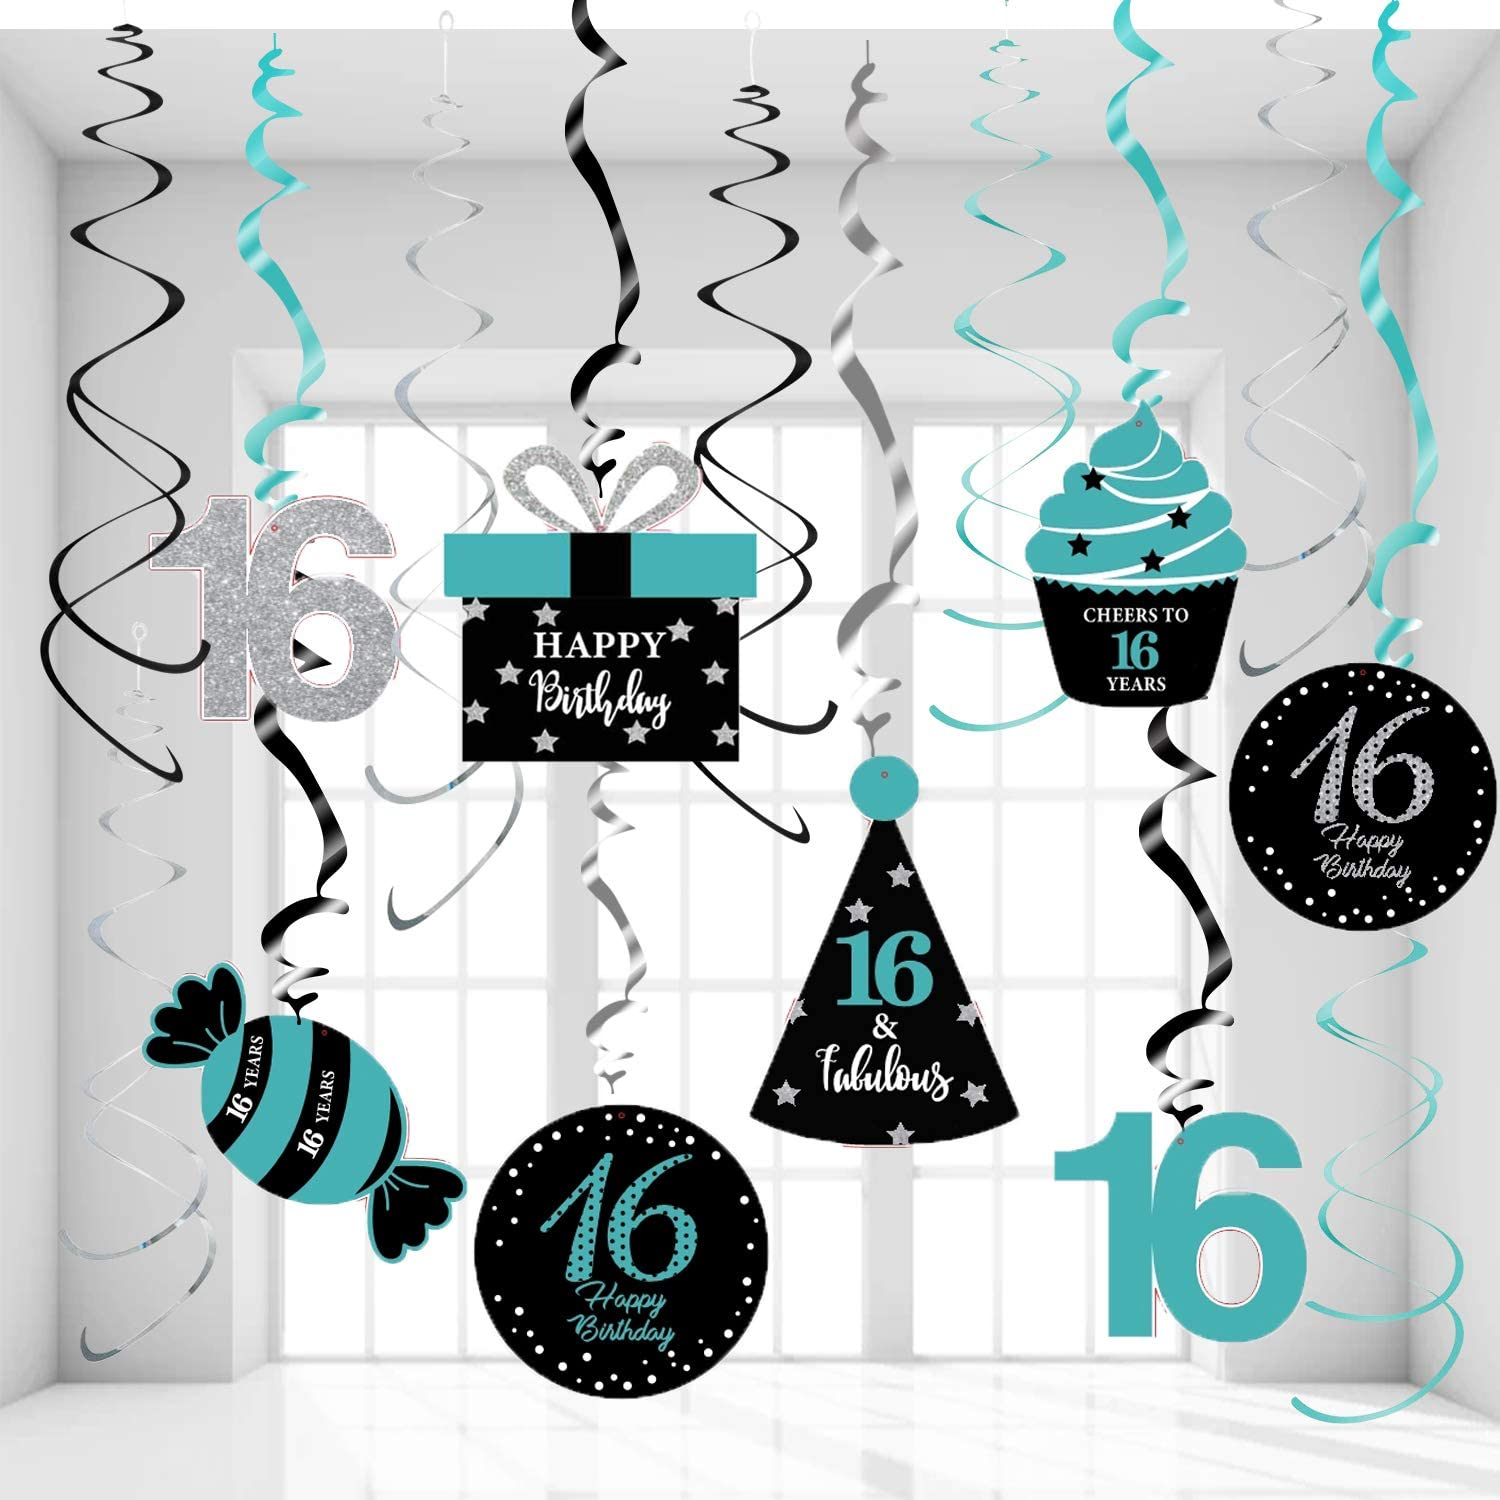 Sweet 16 Birthday Decorations Teal Silver Black for Women Qian's Party Teal Silver Black Foil Hanging Swirls Decorations Girl 16th Birthday Party Hanging Decor – Girl 16th Birthday Party Decoration Swirls of 15pcs